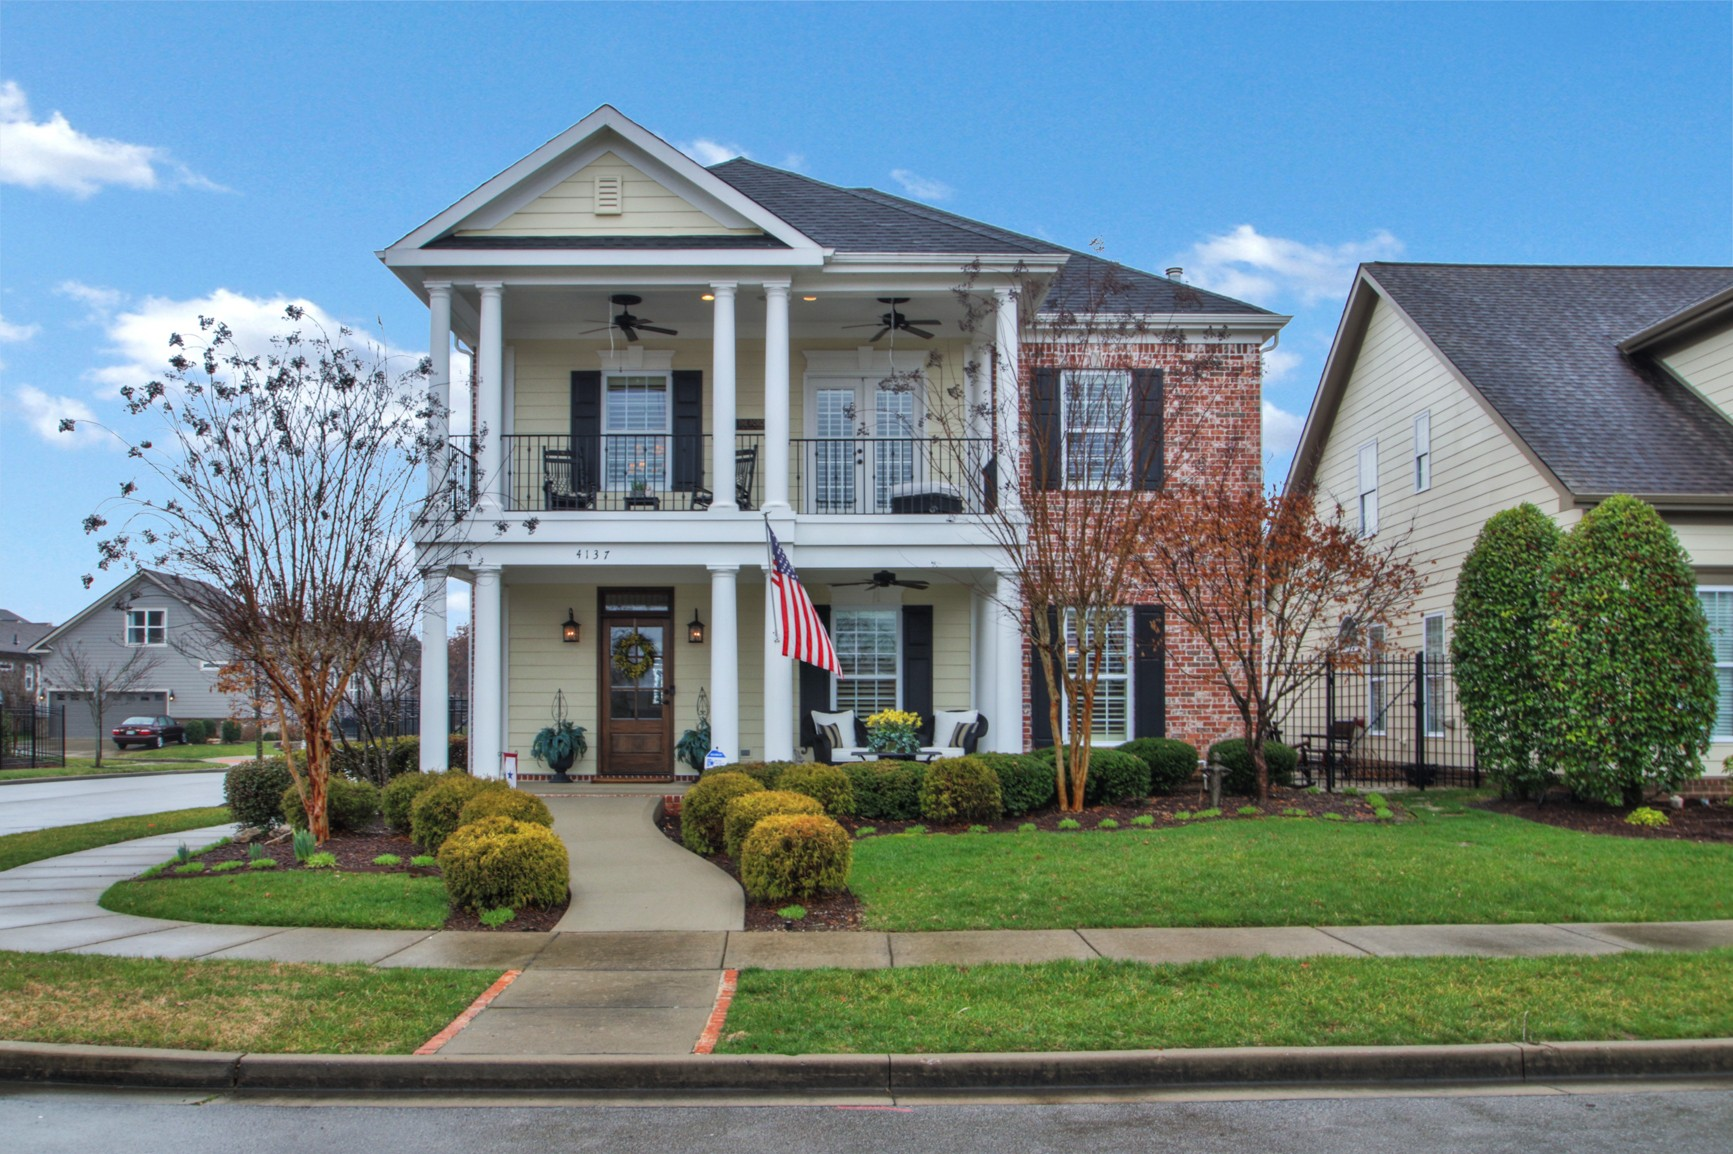 4137 River Links Dr, Spring Hill, TN 37174 - Spring Hill, TN real estate listing